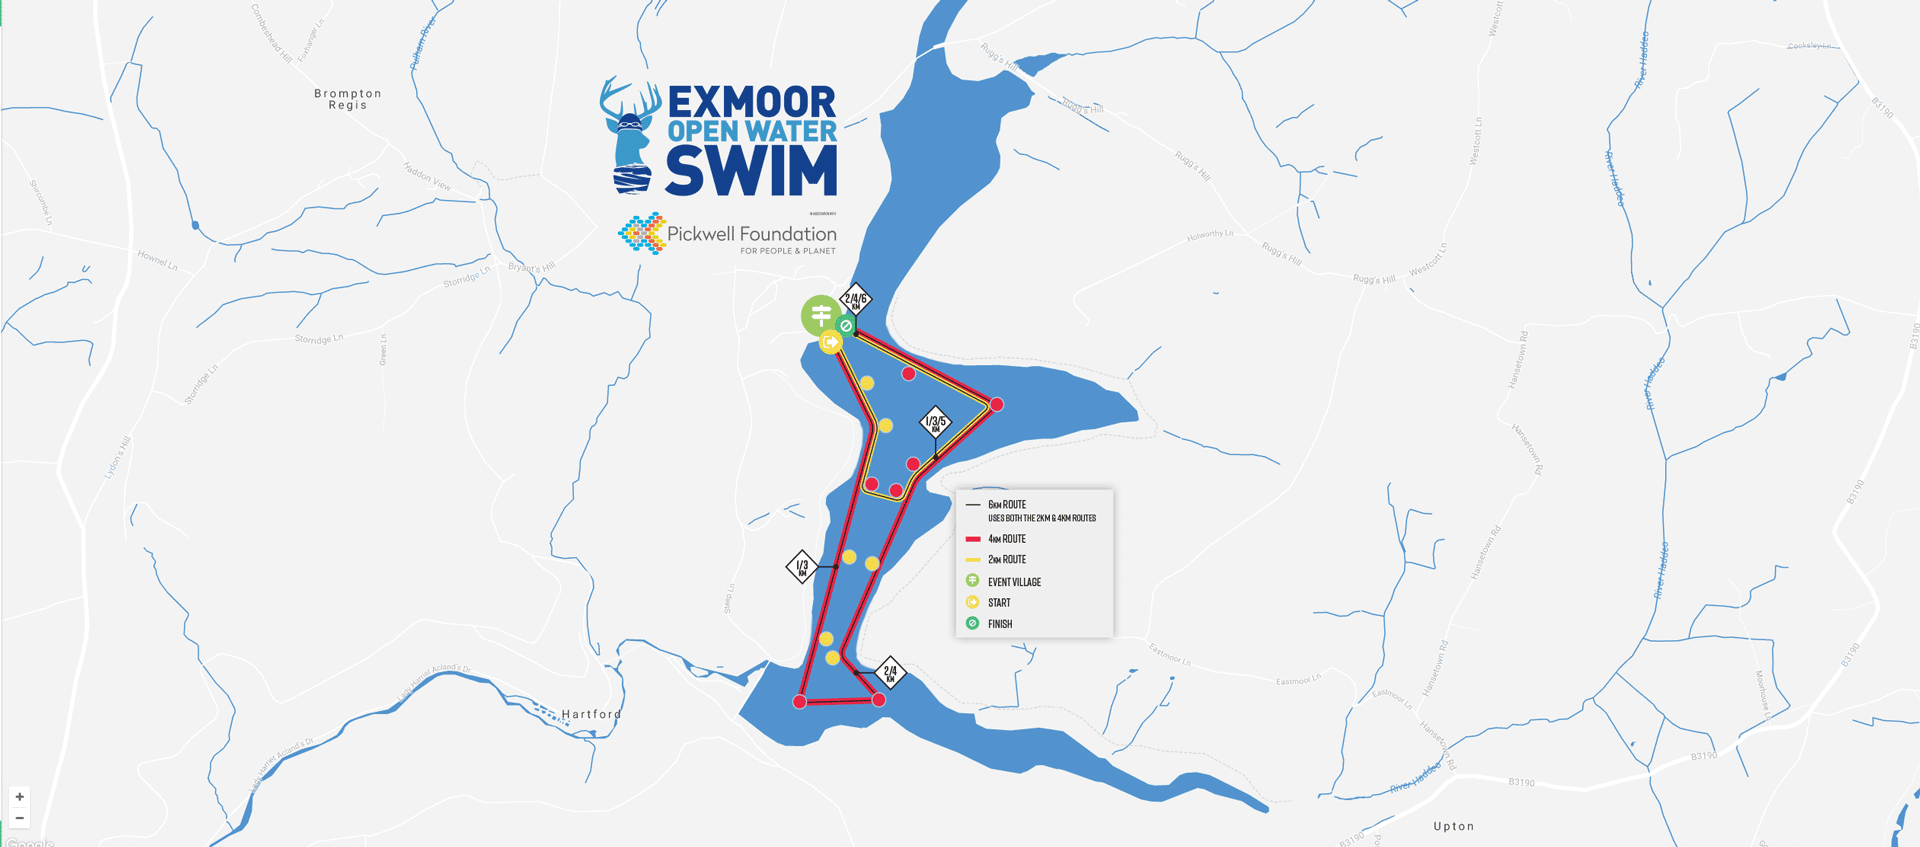 Exmoor Open Water Swim, Wimbleball Lake, Exmoor